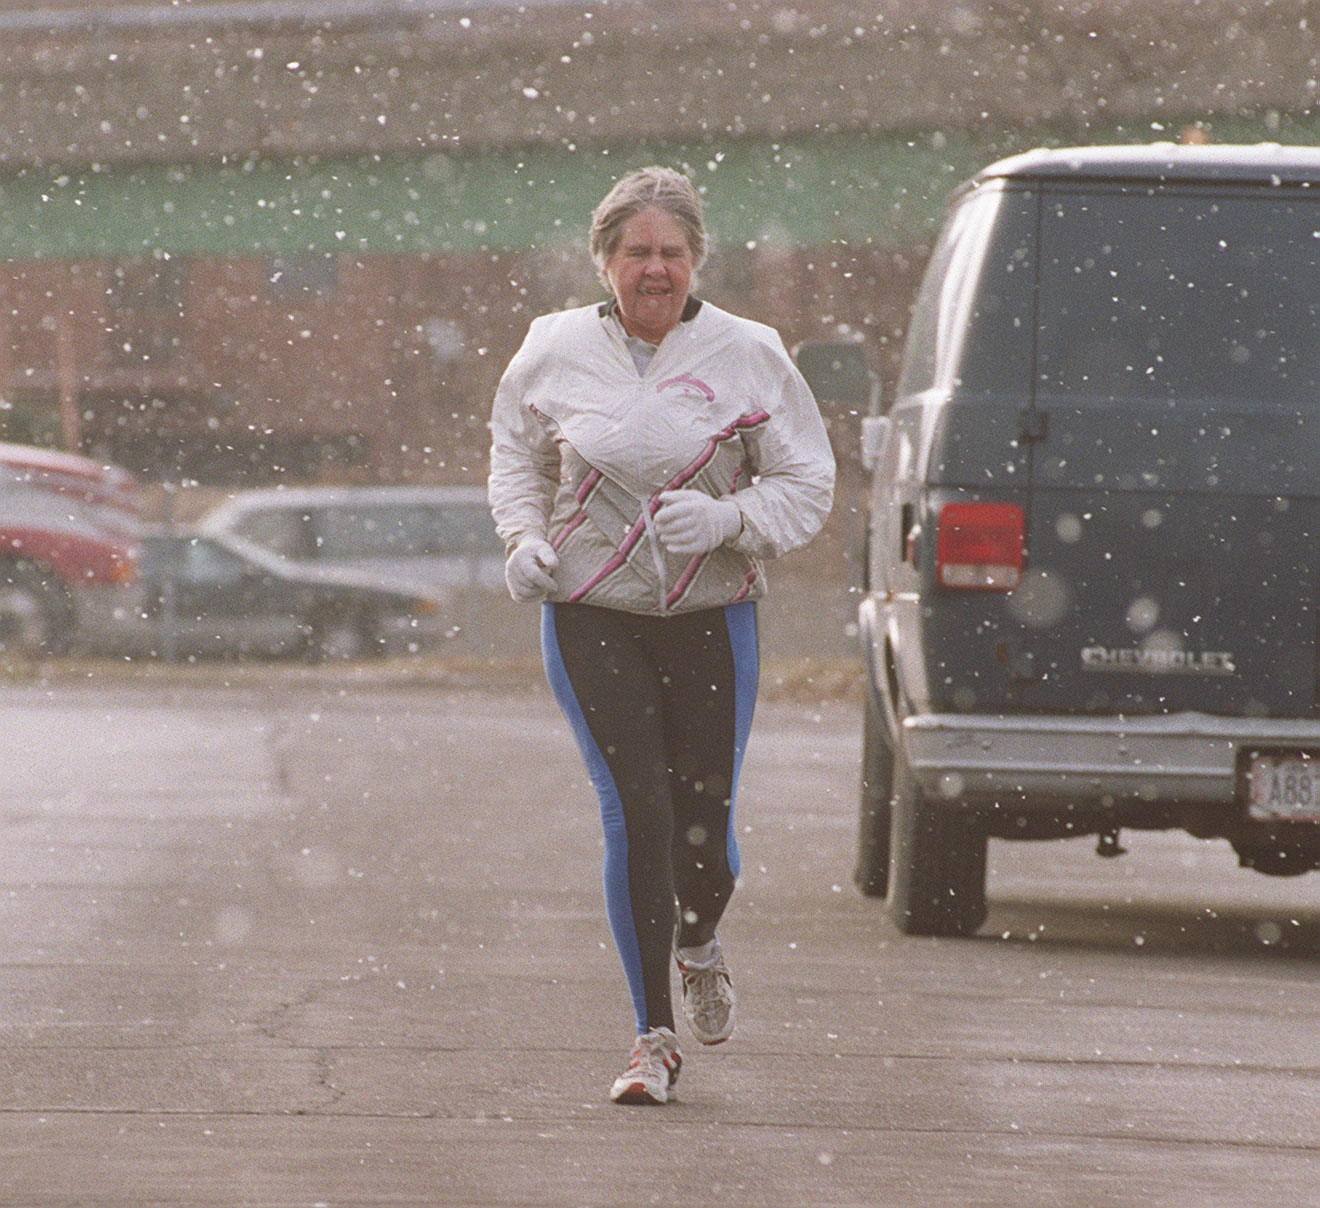 Despite the snow, longtime runner Edna Hyer takes her lunch-hour jog down Carolina Street in downtown Buffalo on Jan. 5, 2000.